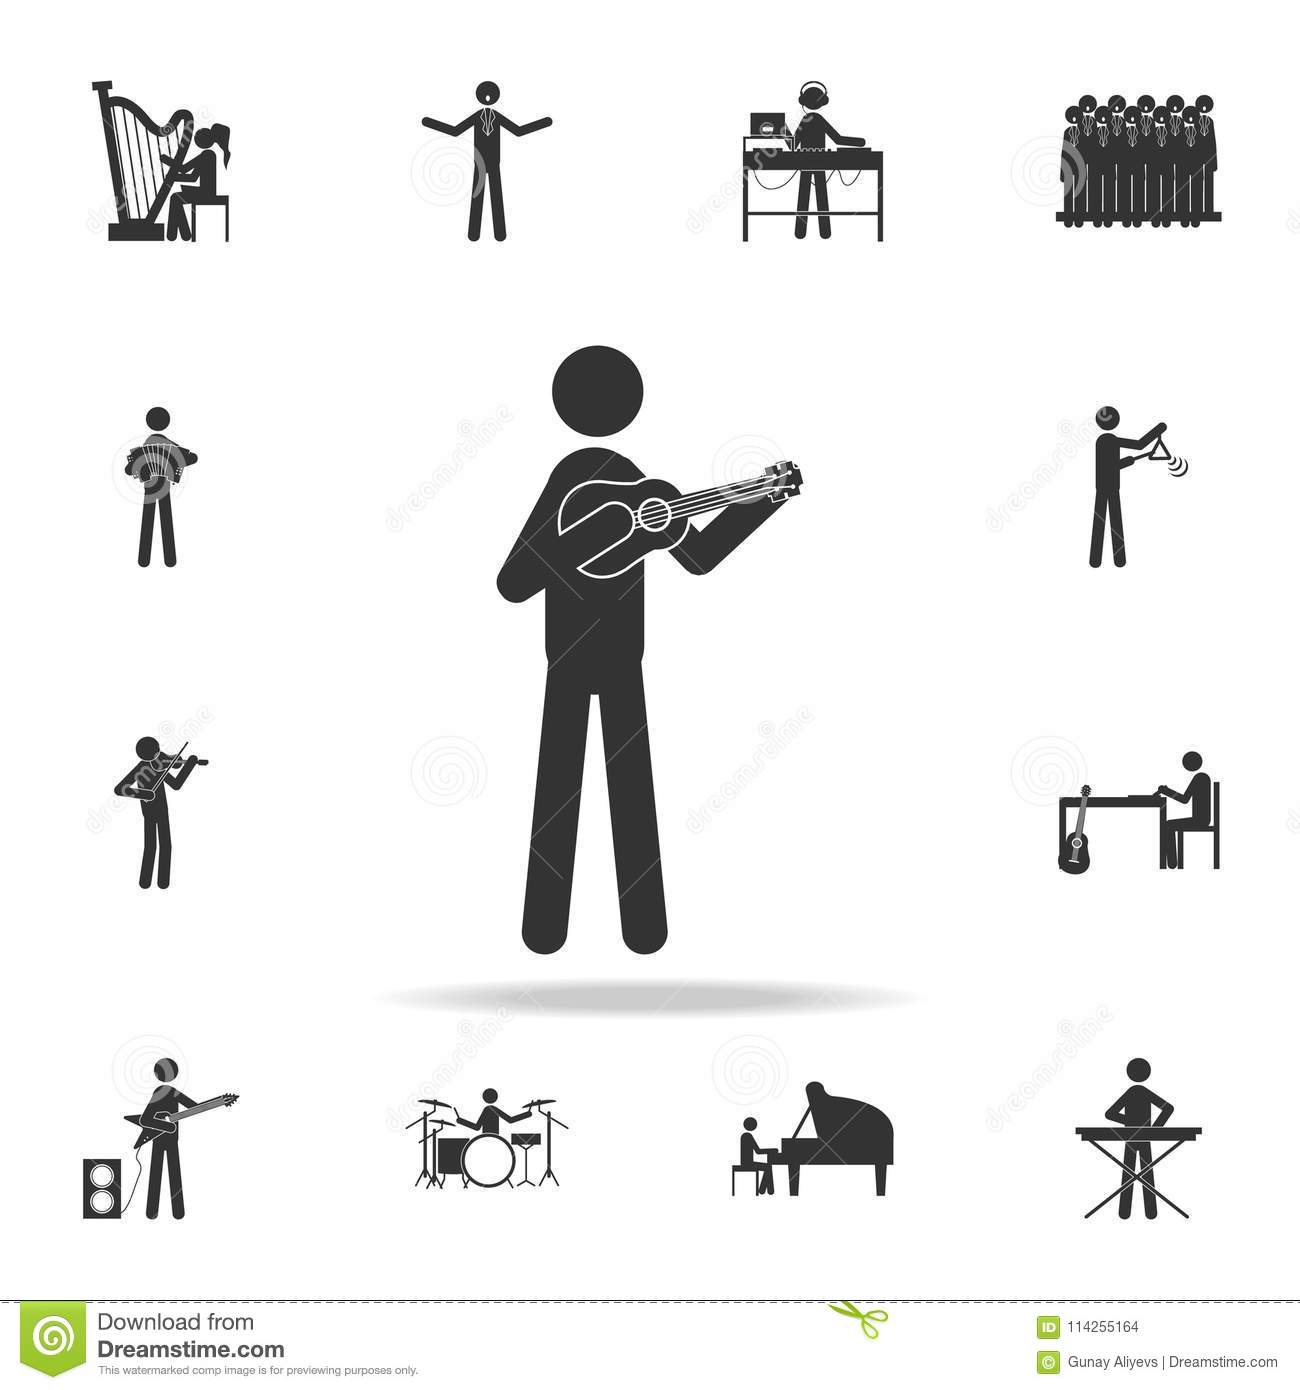 banjo player icon. Detailed set of music icons. Premium quality graphic design. One of the collection icons for websites; web desi